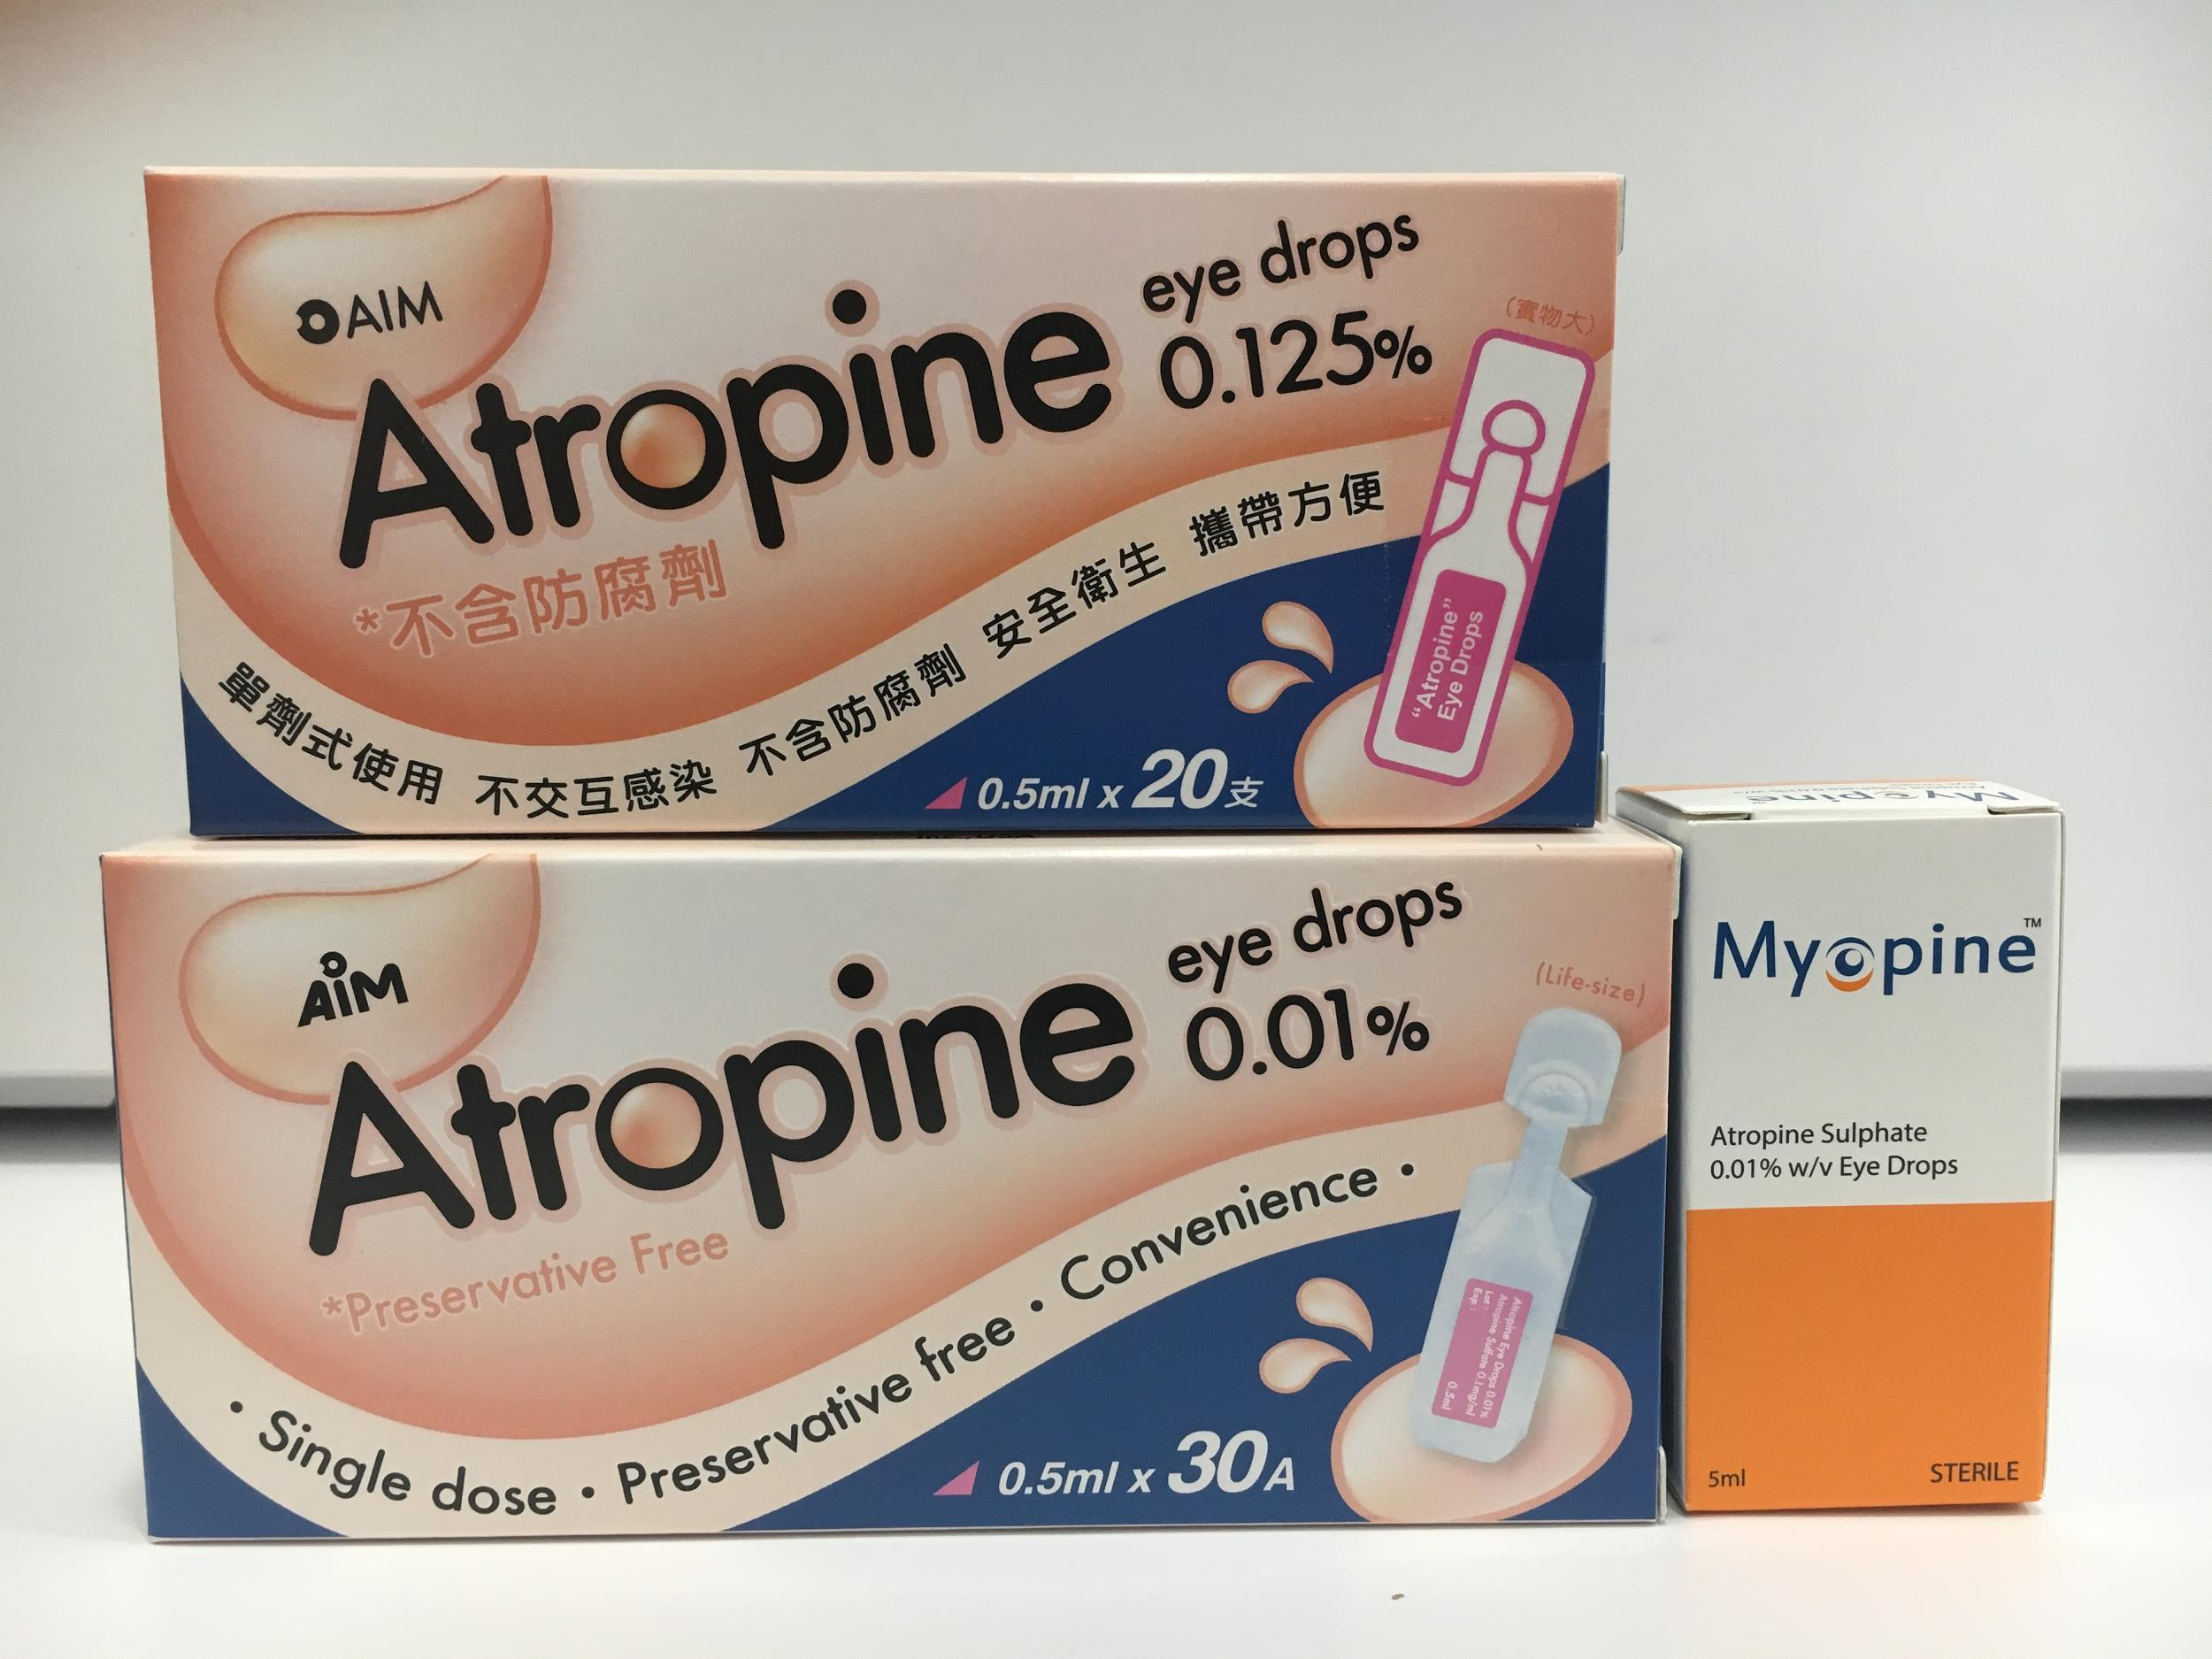 Atropine and Myopine